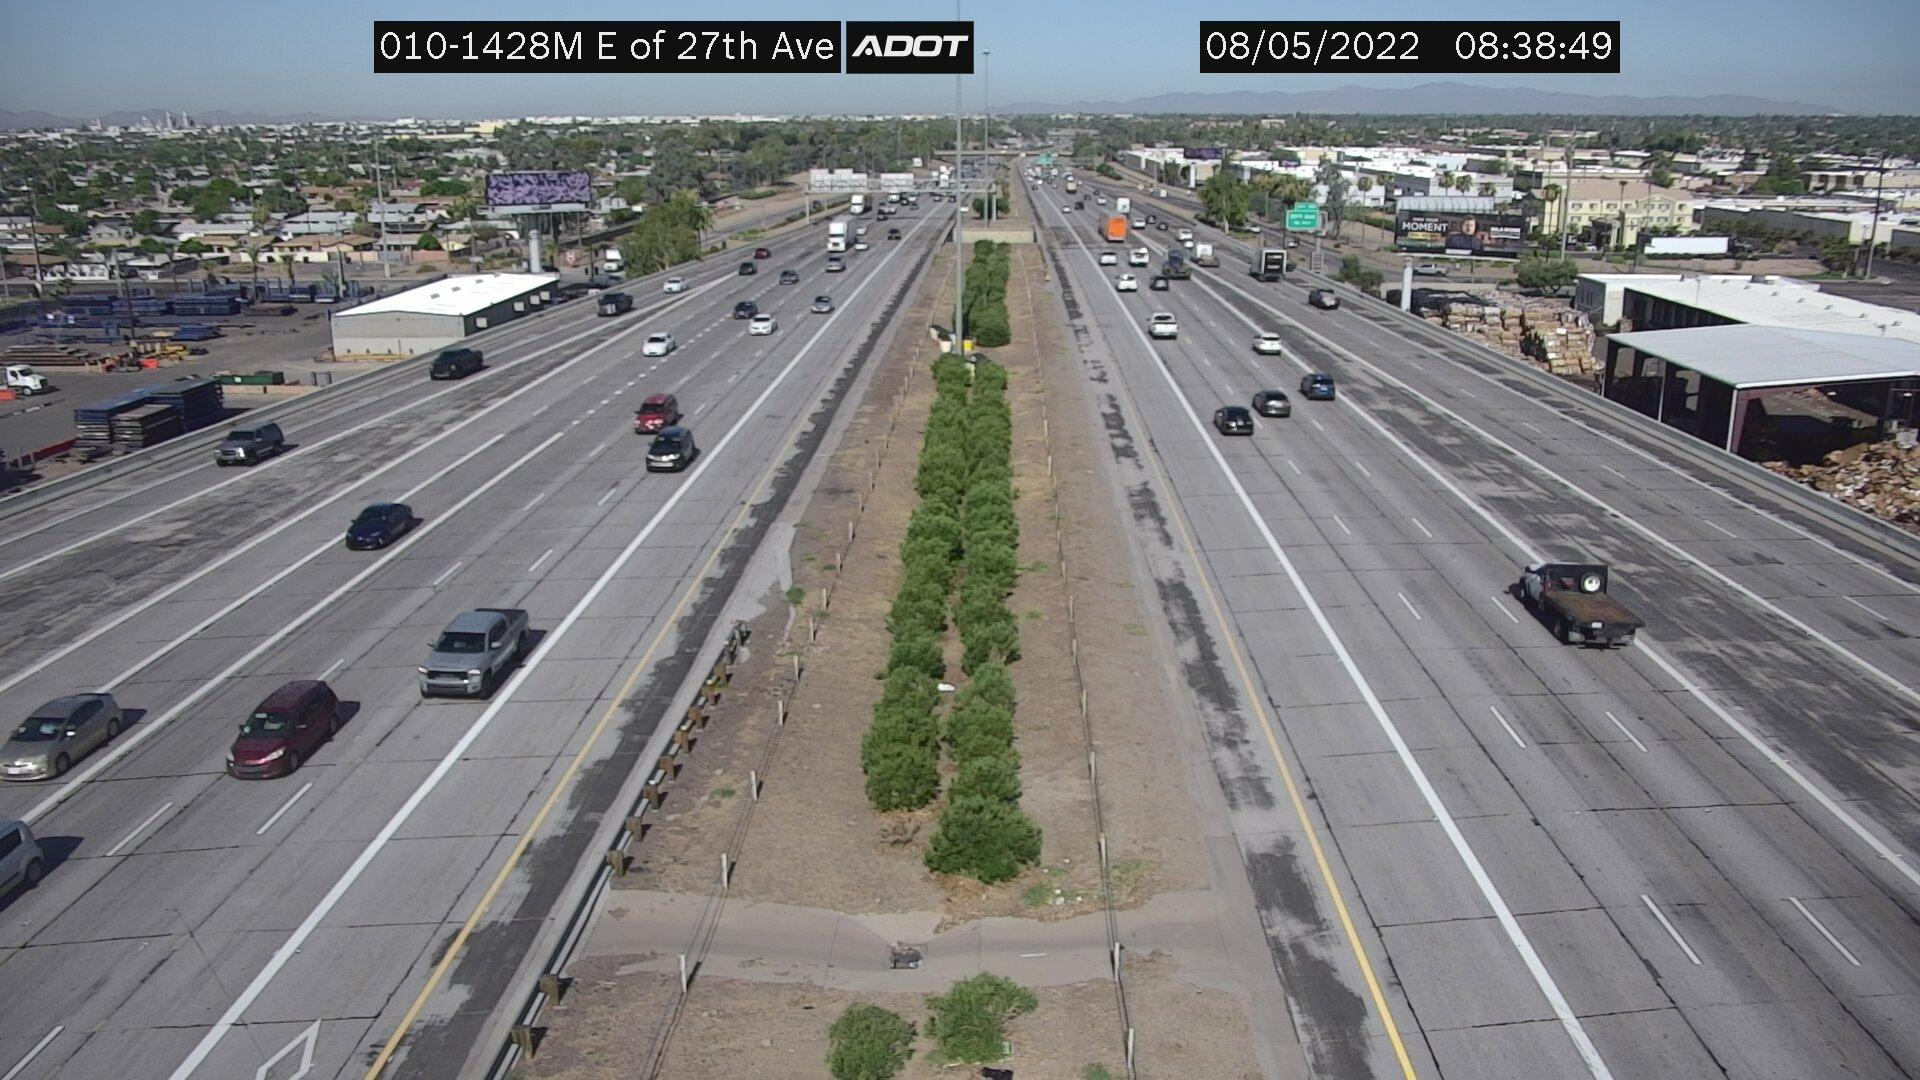 Webcam Cactus Cove Trailer Park: I-10W and 27th Ave